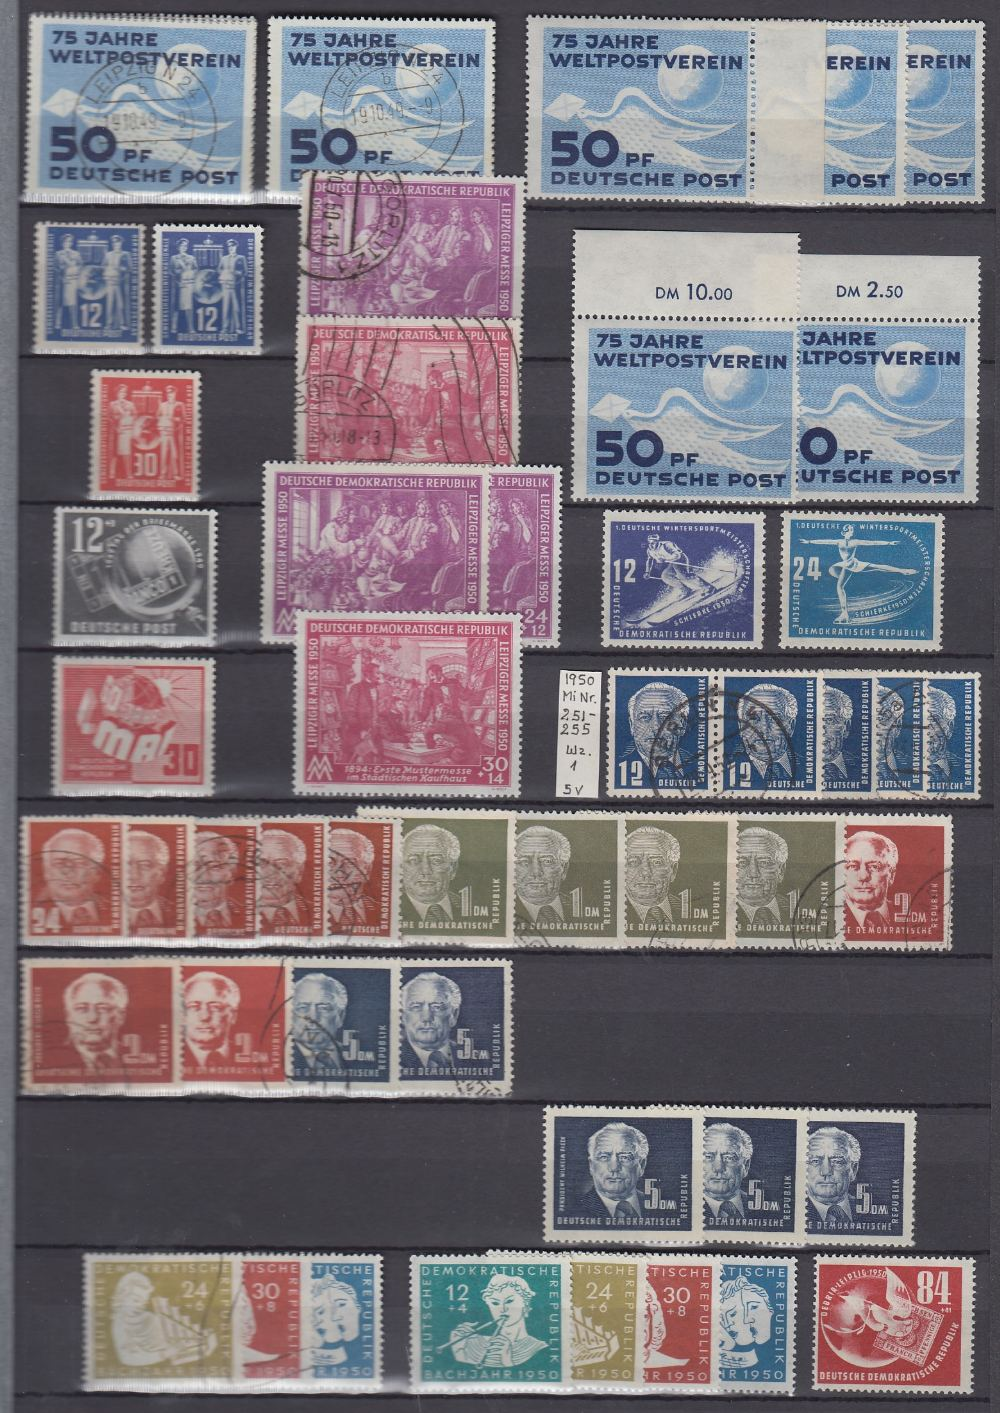 STAMPS GERMANY Large green stockbook 1949 - 1990 unmounted mint and fine used, including minisheets,